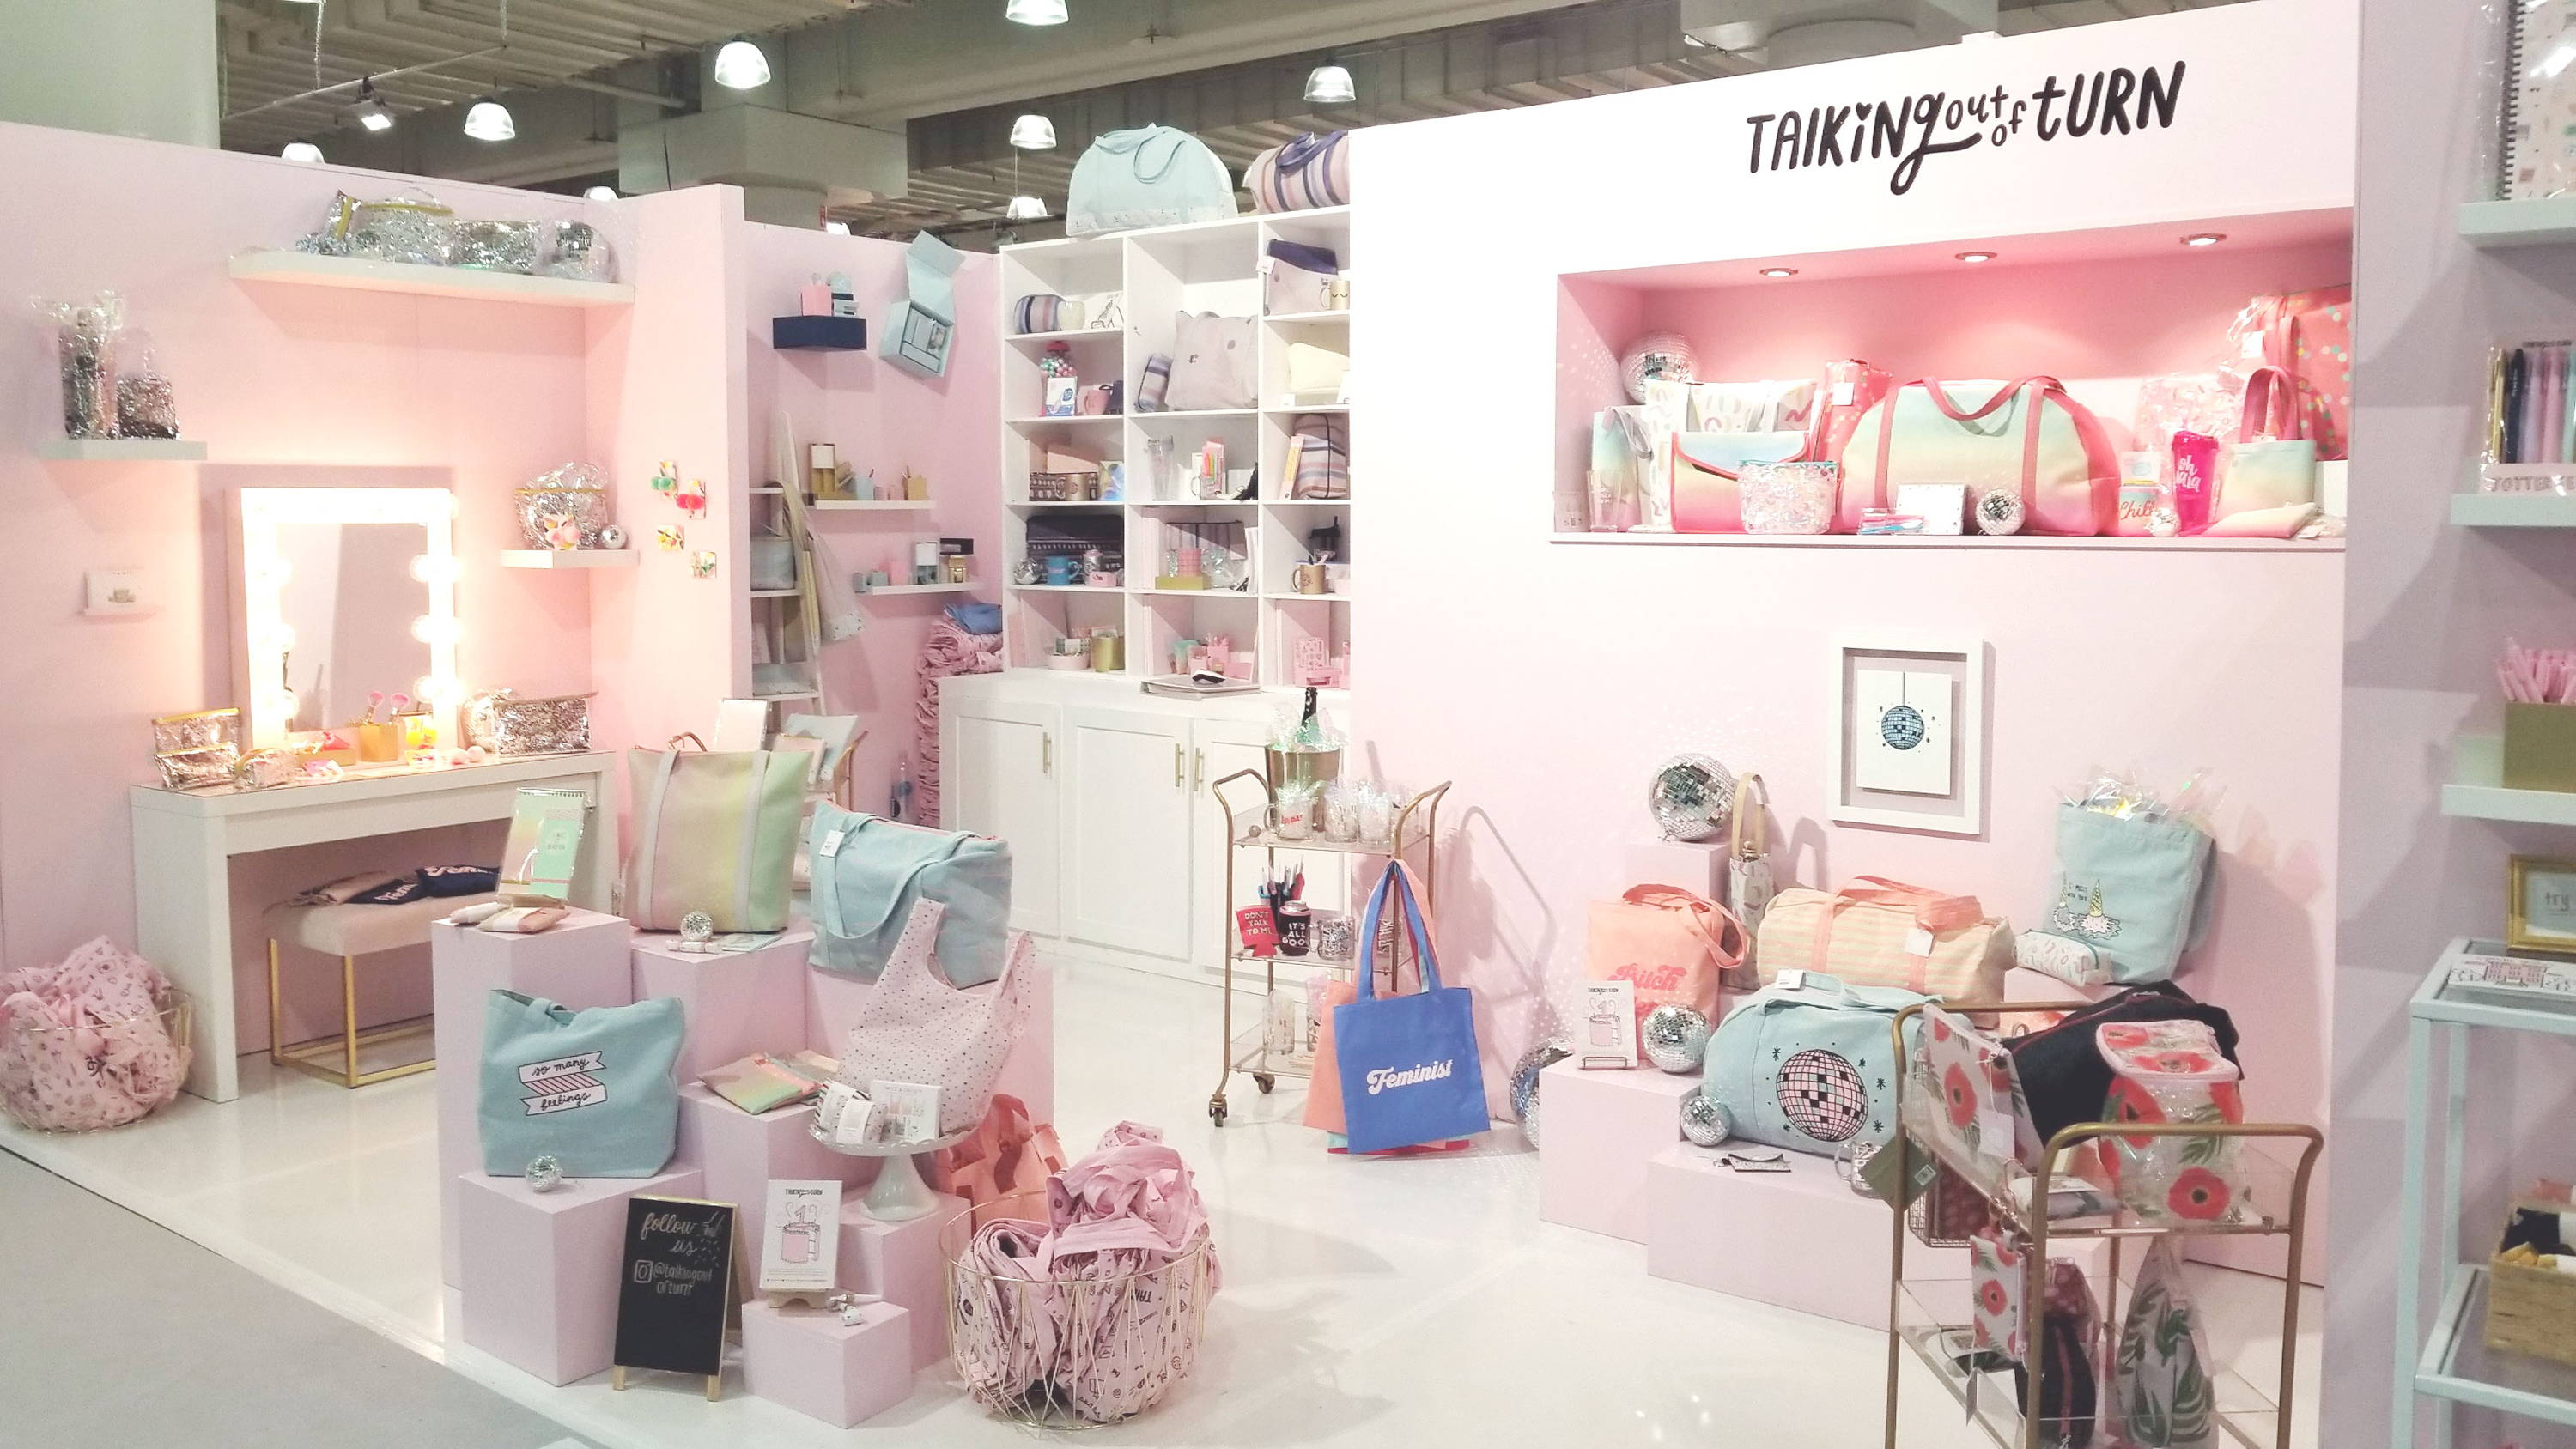 Cute tradeshow booth filled with Toot products like cute tote bags, pencil pouches, and more!